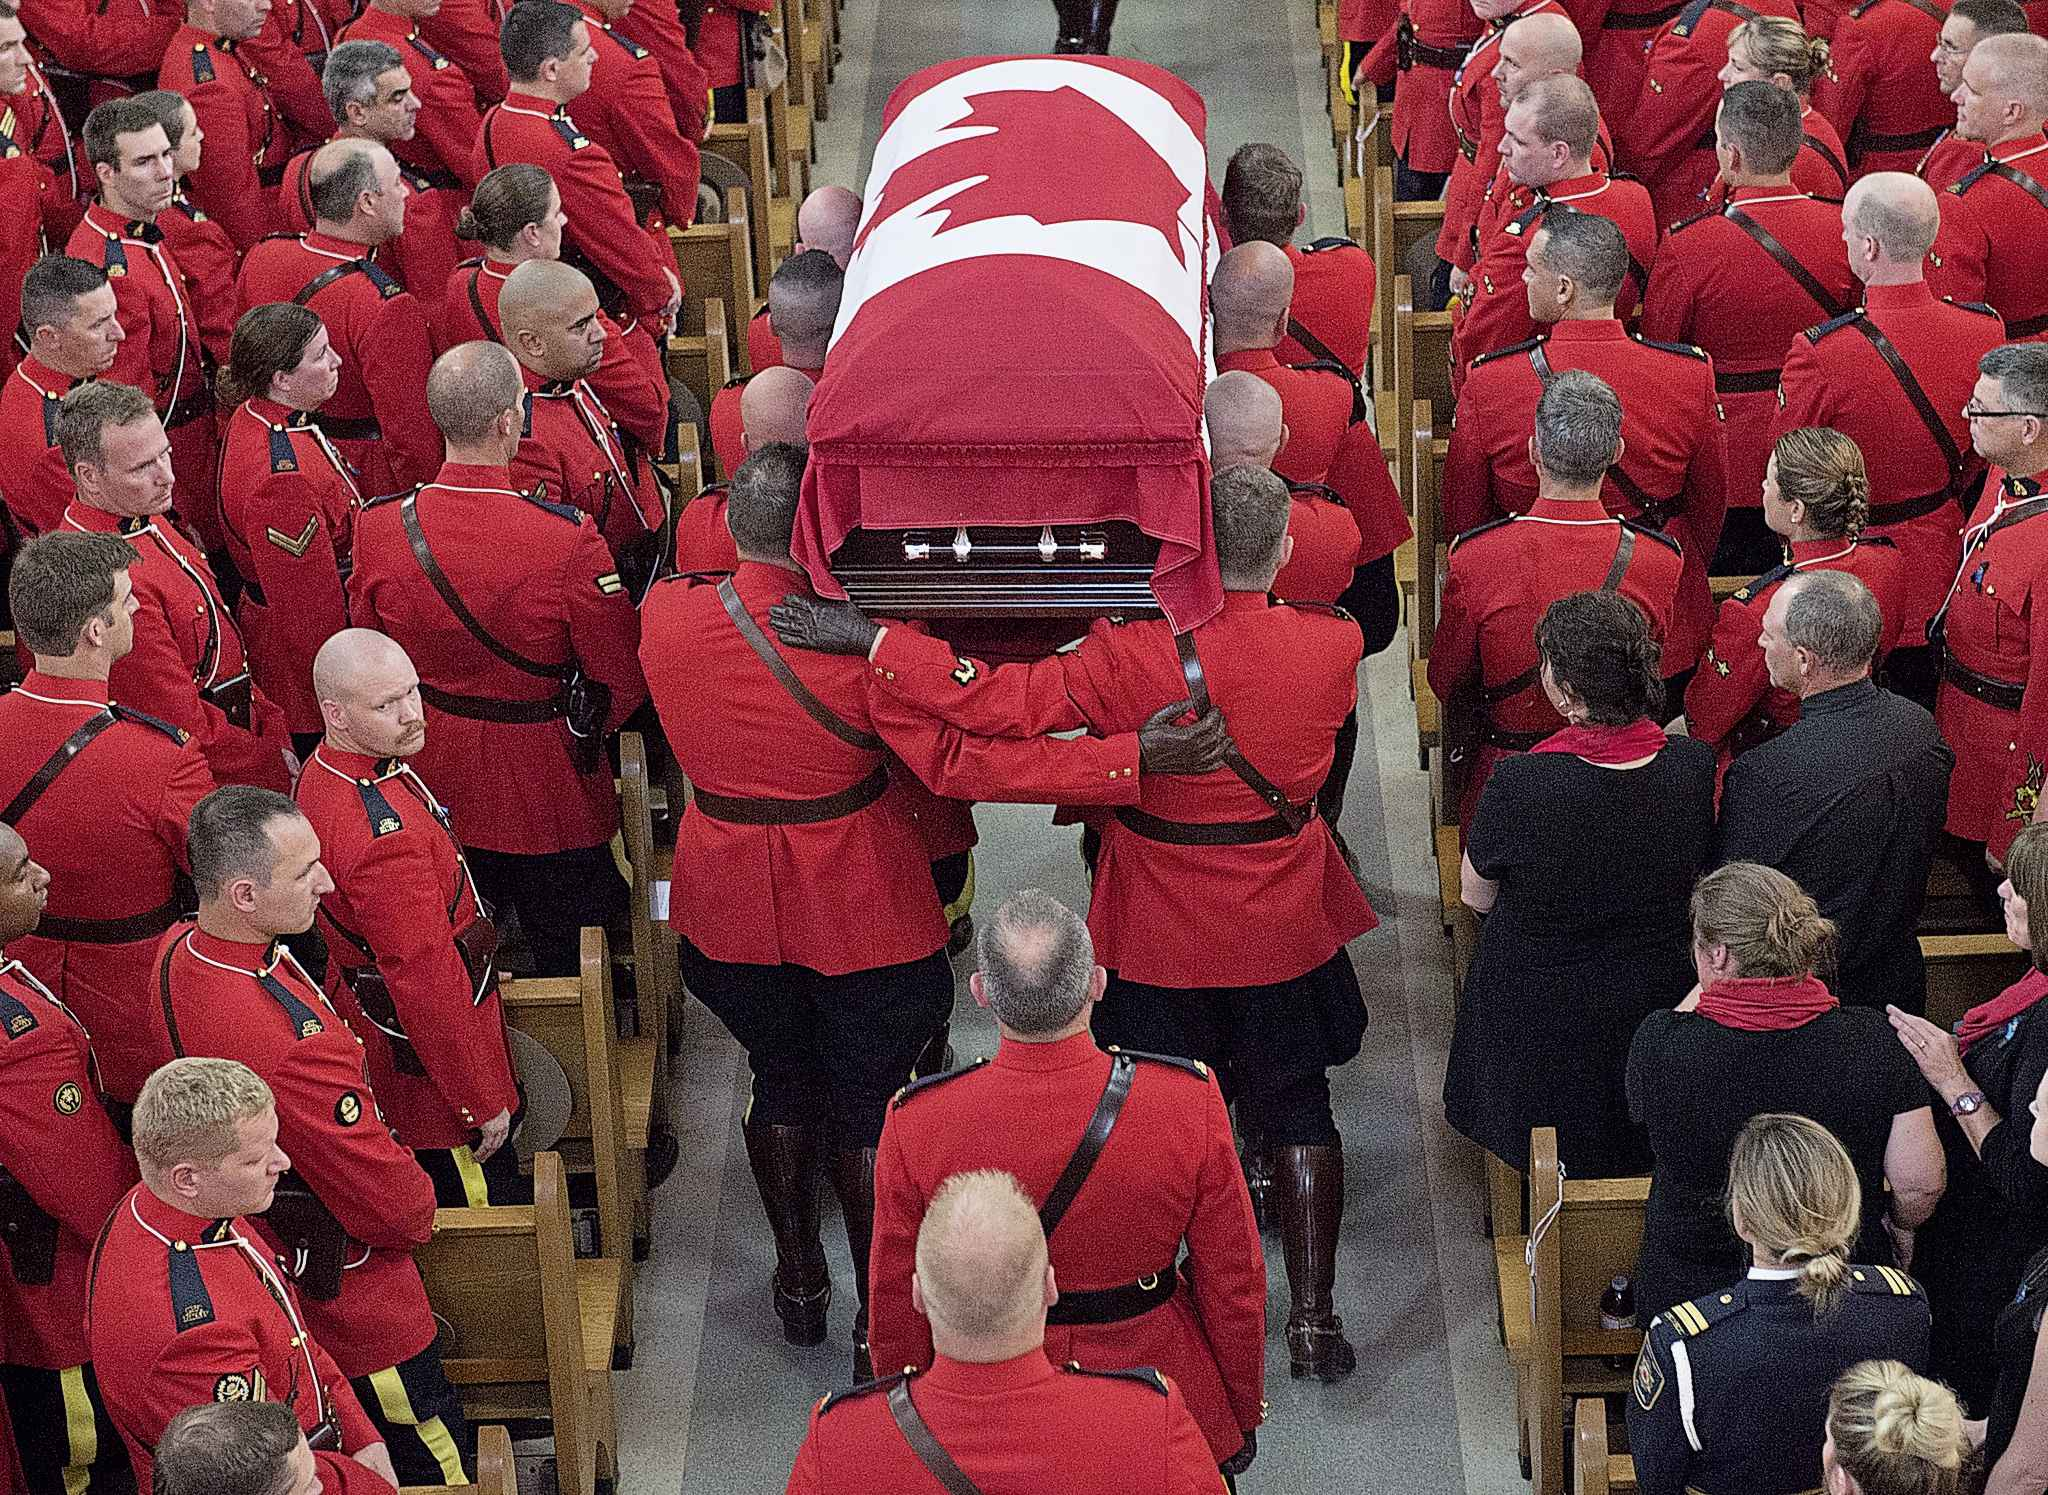 Pall Bearers carry the coffin at the regimental funeral for RCMP Const. Francis Deschenes in Moncton, N.B. on Wednesday, Sept. 20, 2017. Deschenes was killed after he stopped to help a motorist change a tire and a cargo van slammed into his cruiser.